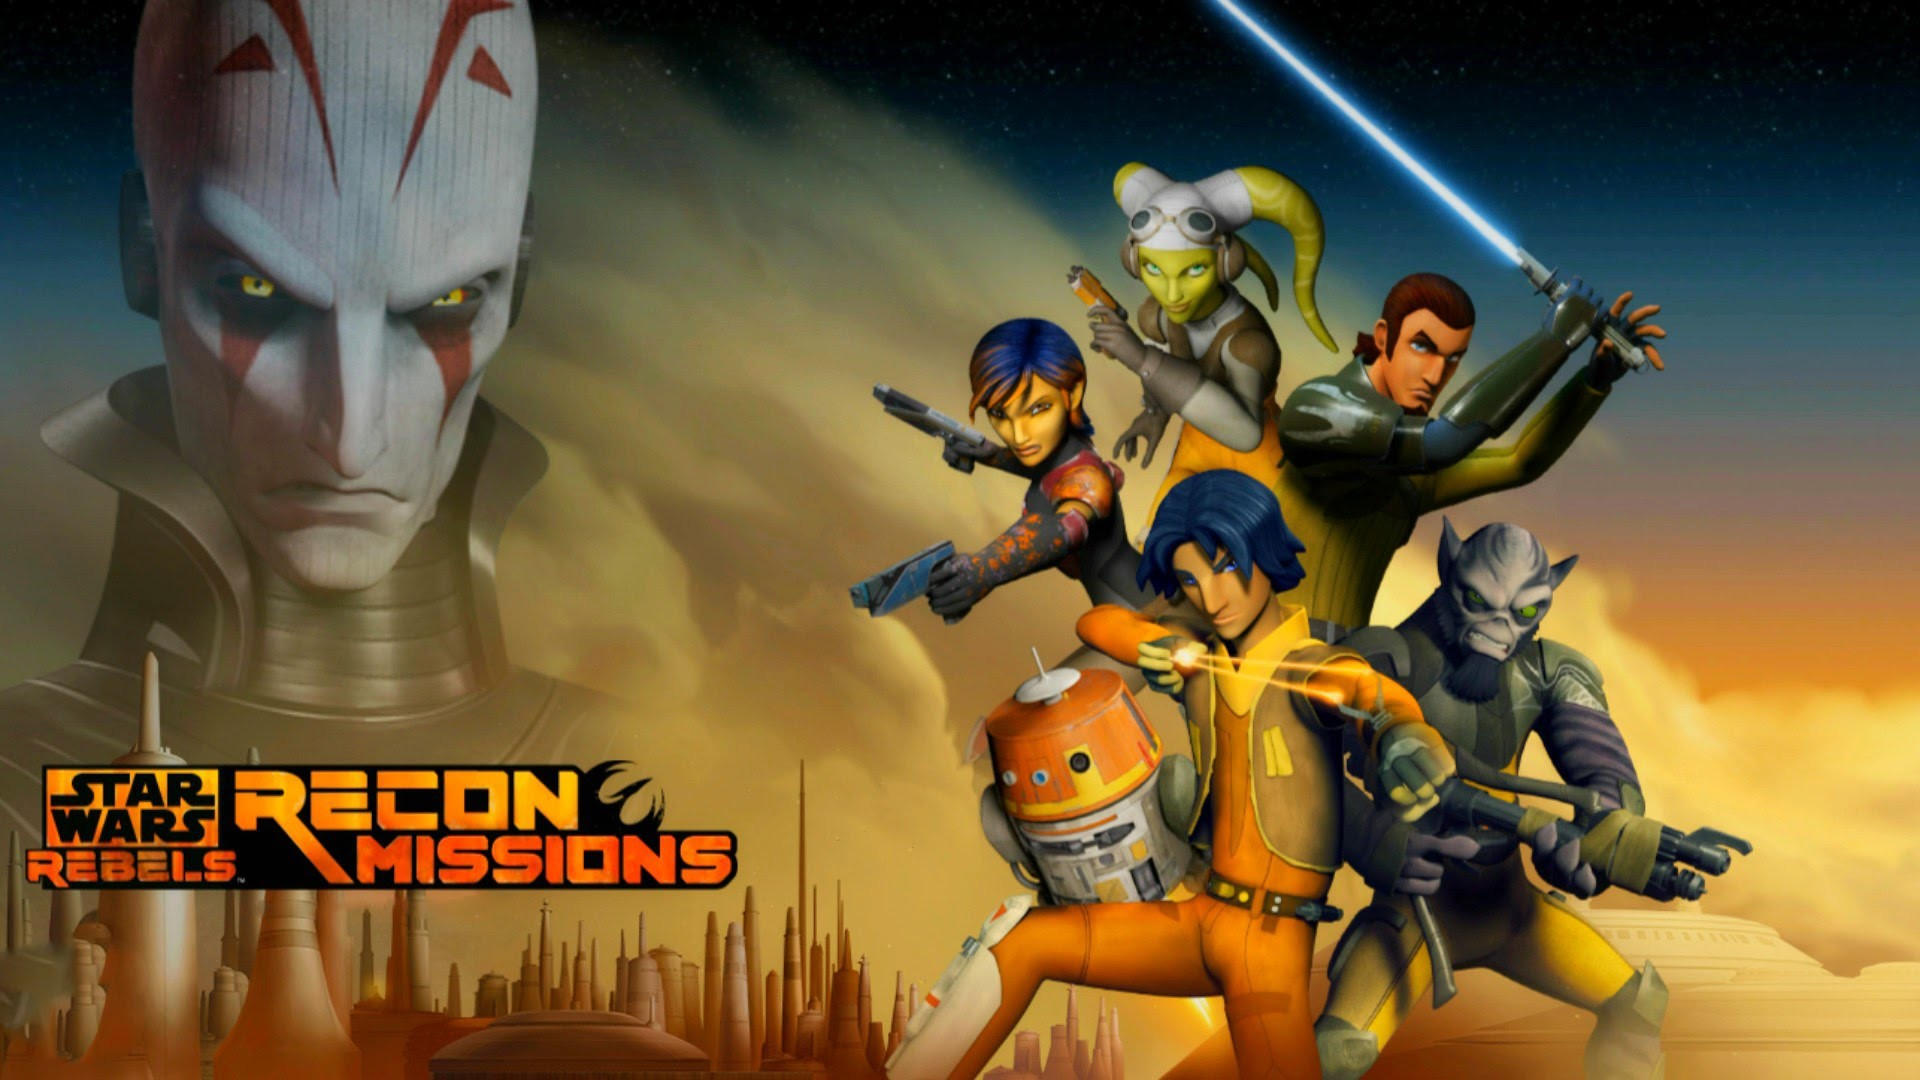 Star Wars Rebels Wallpapers (86+ images) - photo#34